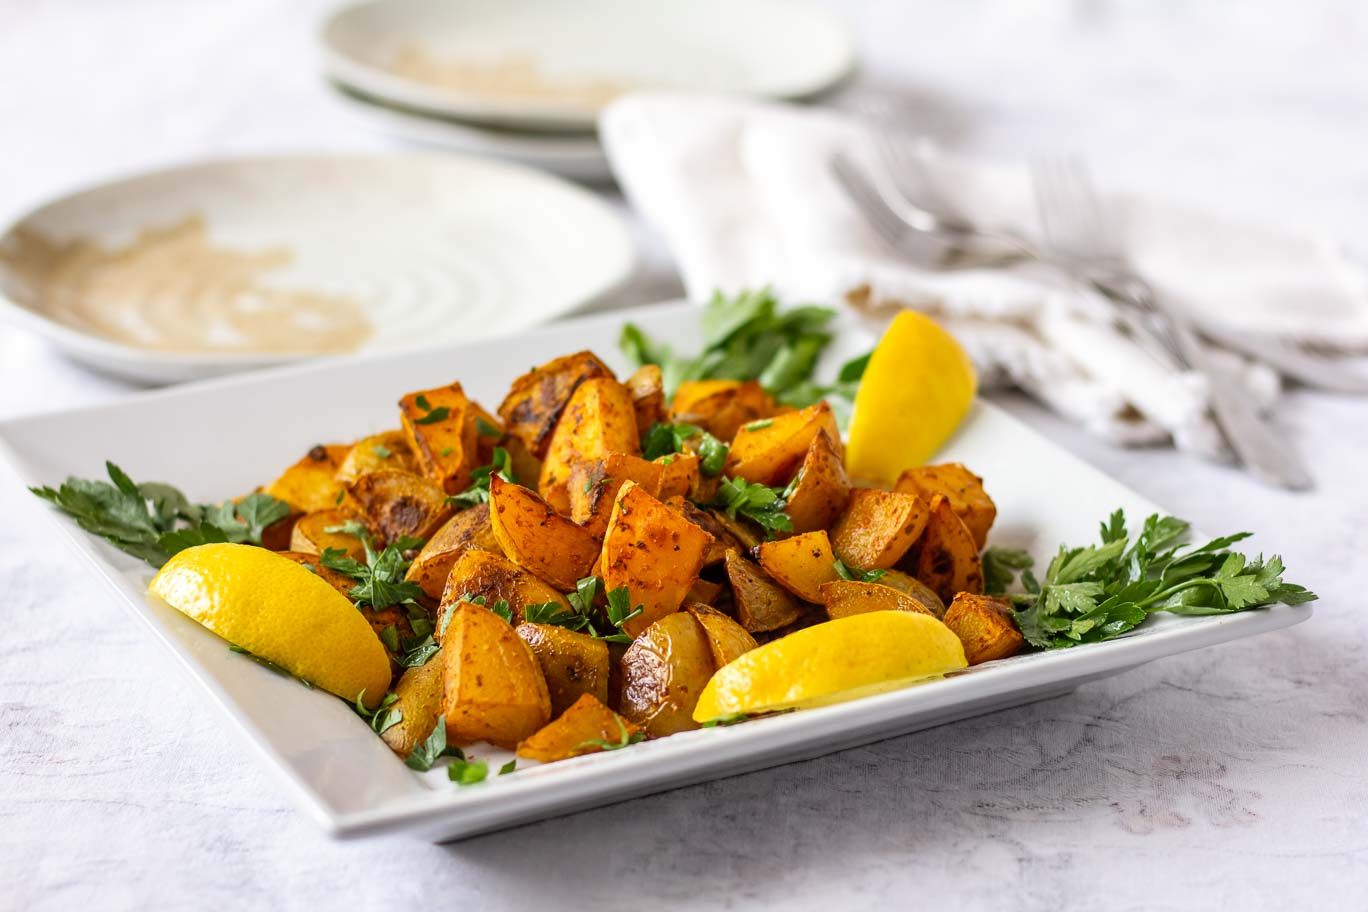 Square white plate with Turmeric spiced Oil-free Roasted Potatoes garnished with 3 lemon slices and parsley